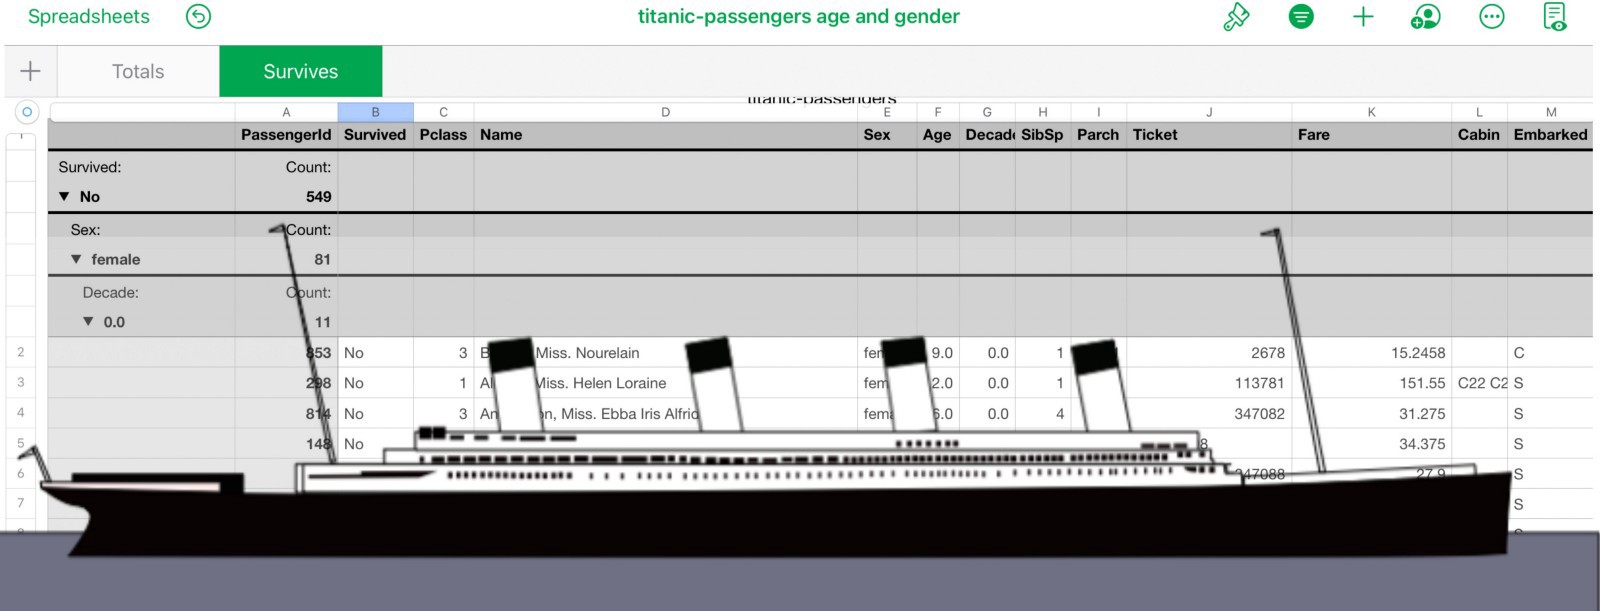 Drawing of the Titanic with a spreadsheet in the background.